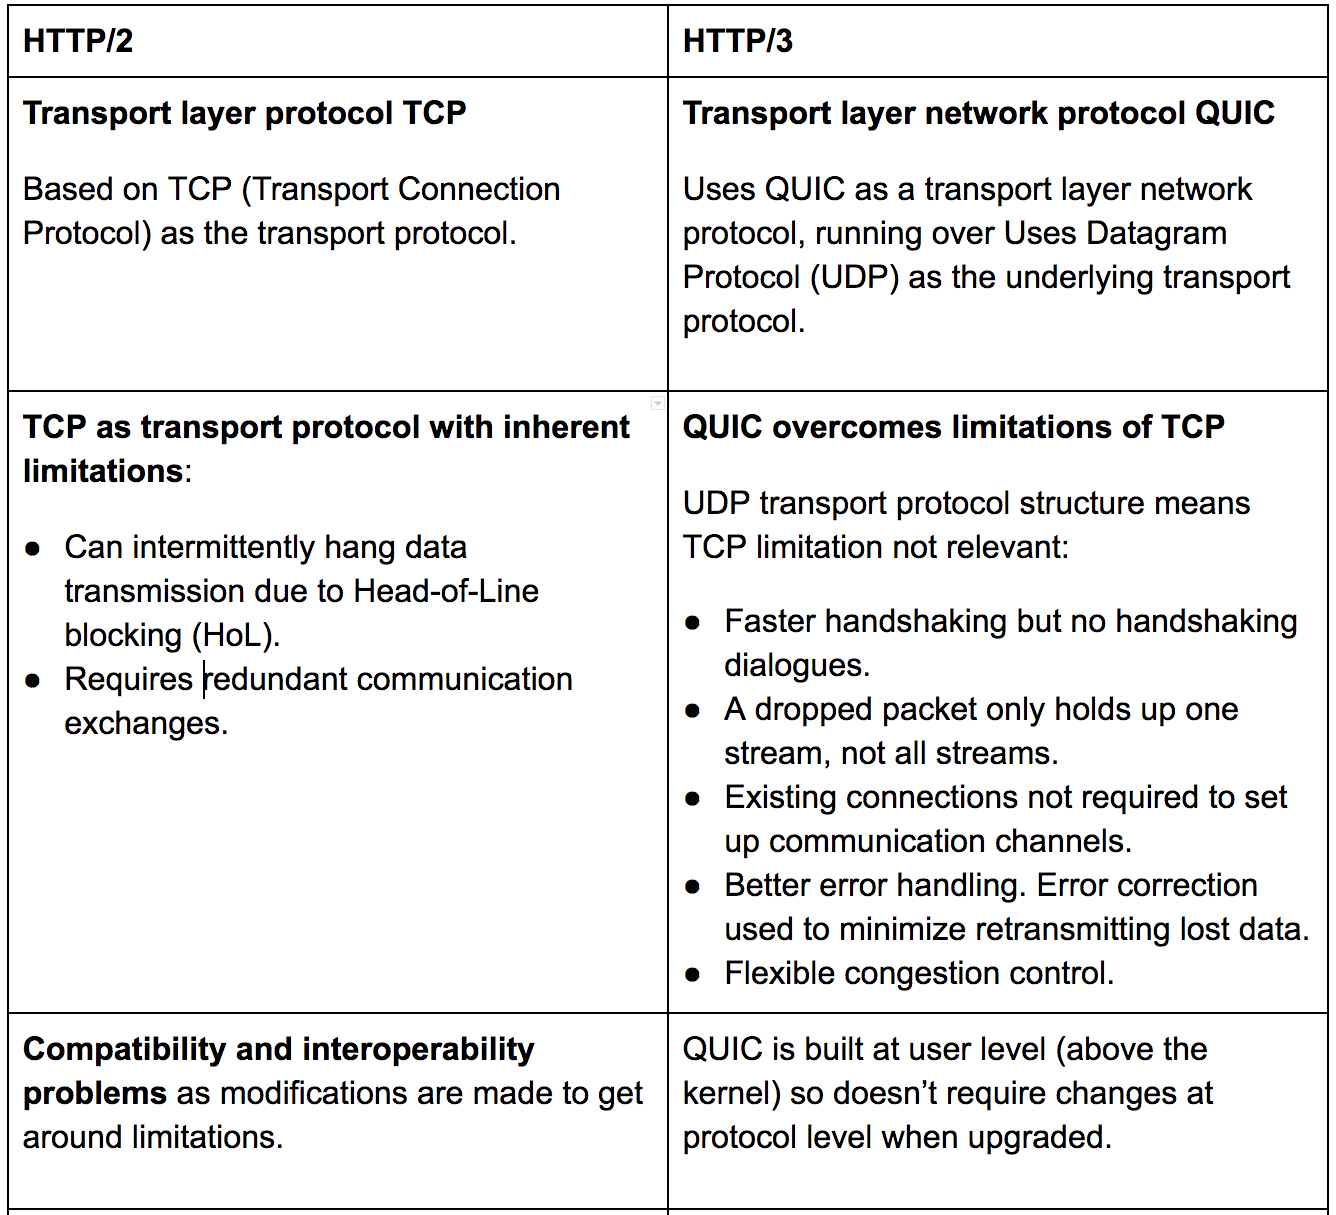 Features and capabilities of HTTP/2 and HTTP/3 Part 1/2